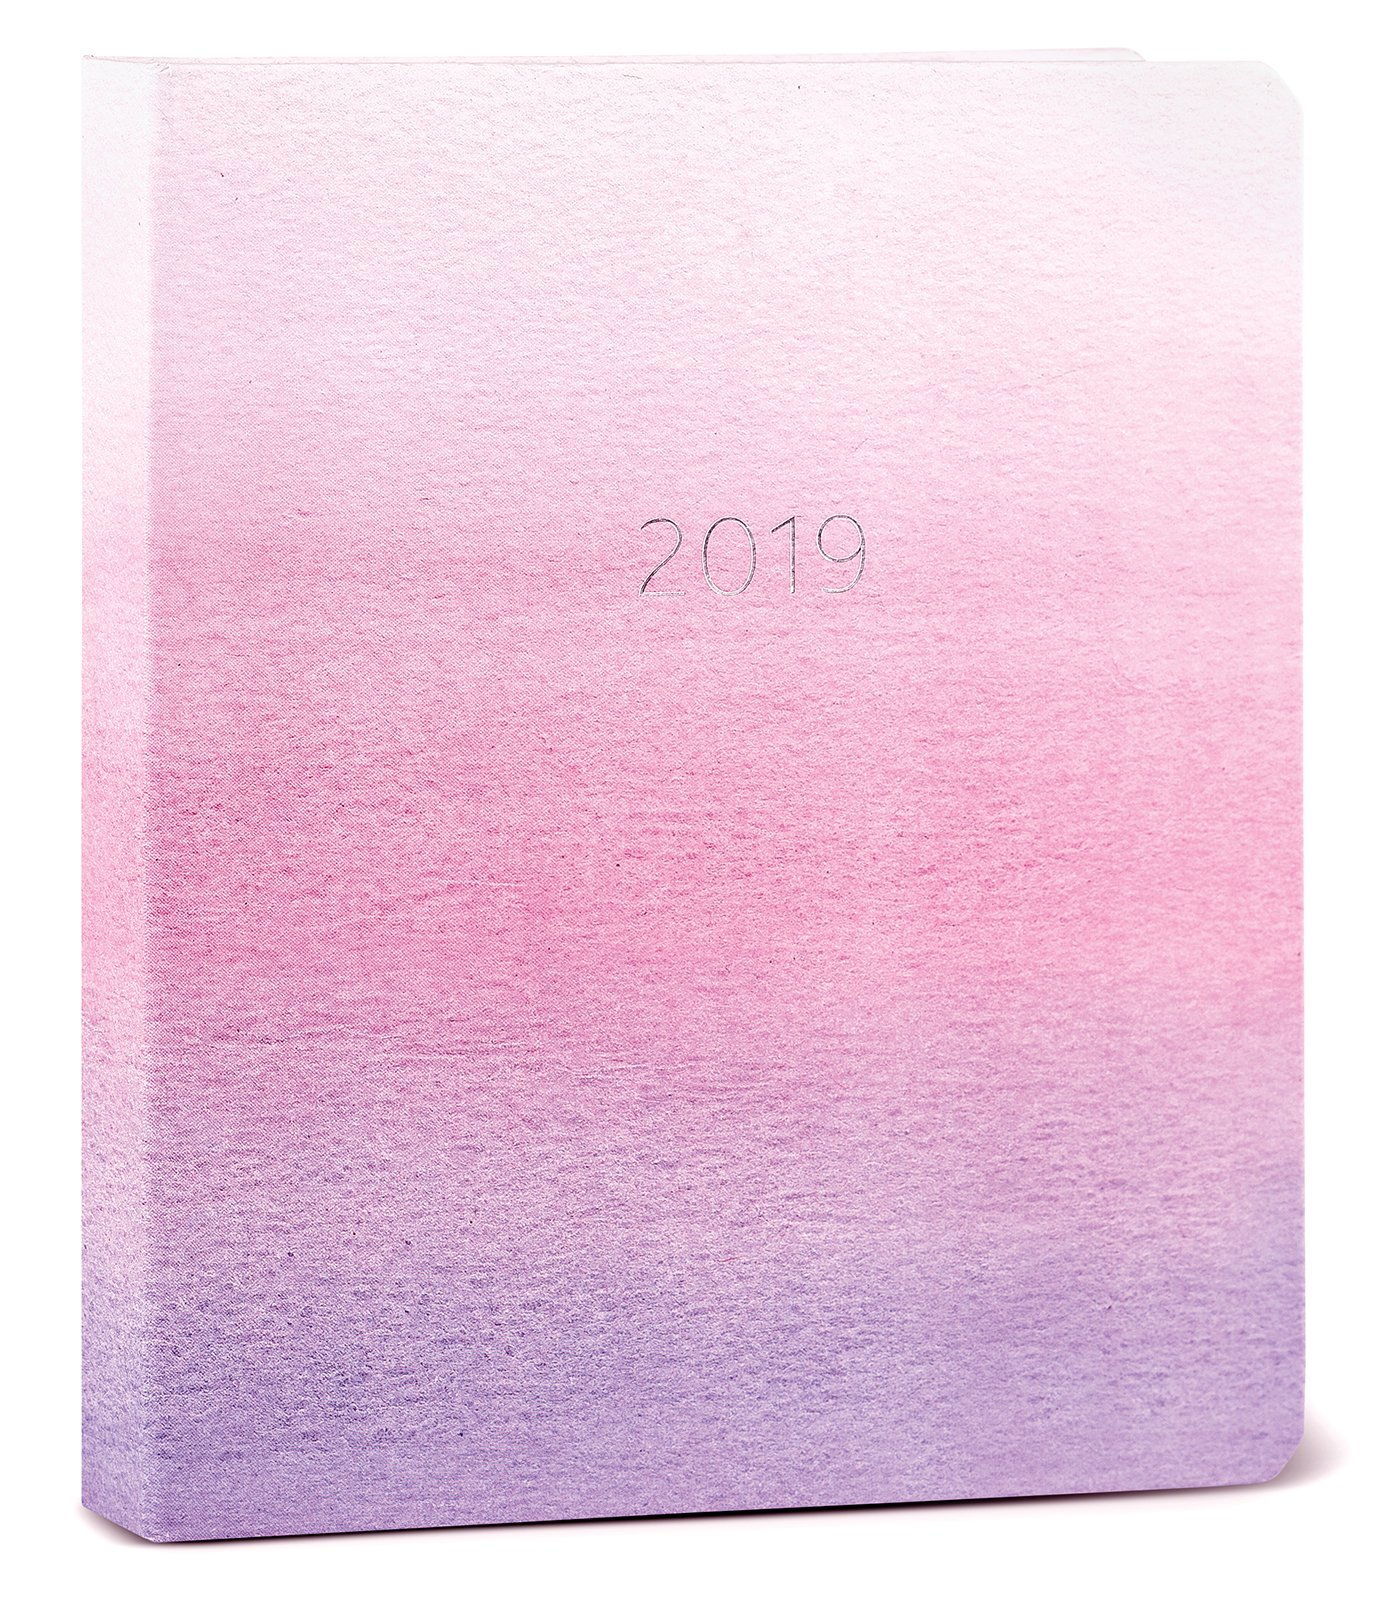 High Note 2019 Mindfulness Sunrise Hardcover Organizer 18-Month Weekly Engagement Planner - July 2018 to December 2019, 7x8.5 (CHH-0568) Calendar – Engagement Calendar, May 21 2018 Sellers Publishing Inc Inc. 1531905684 /